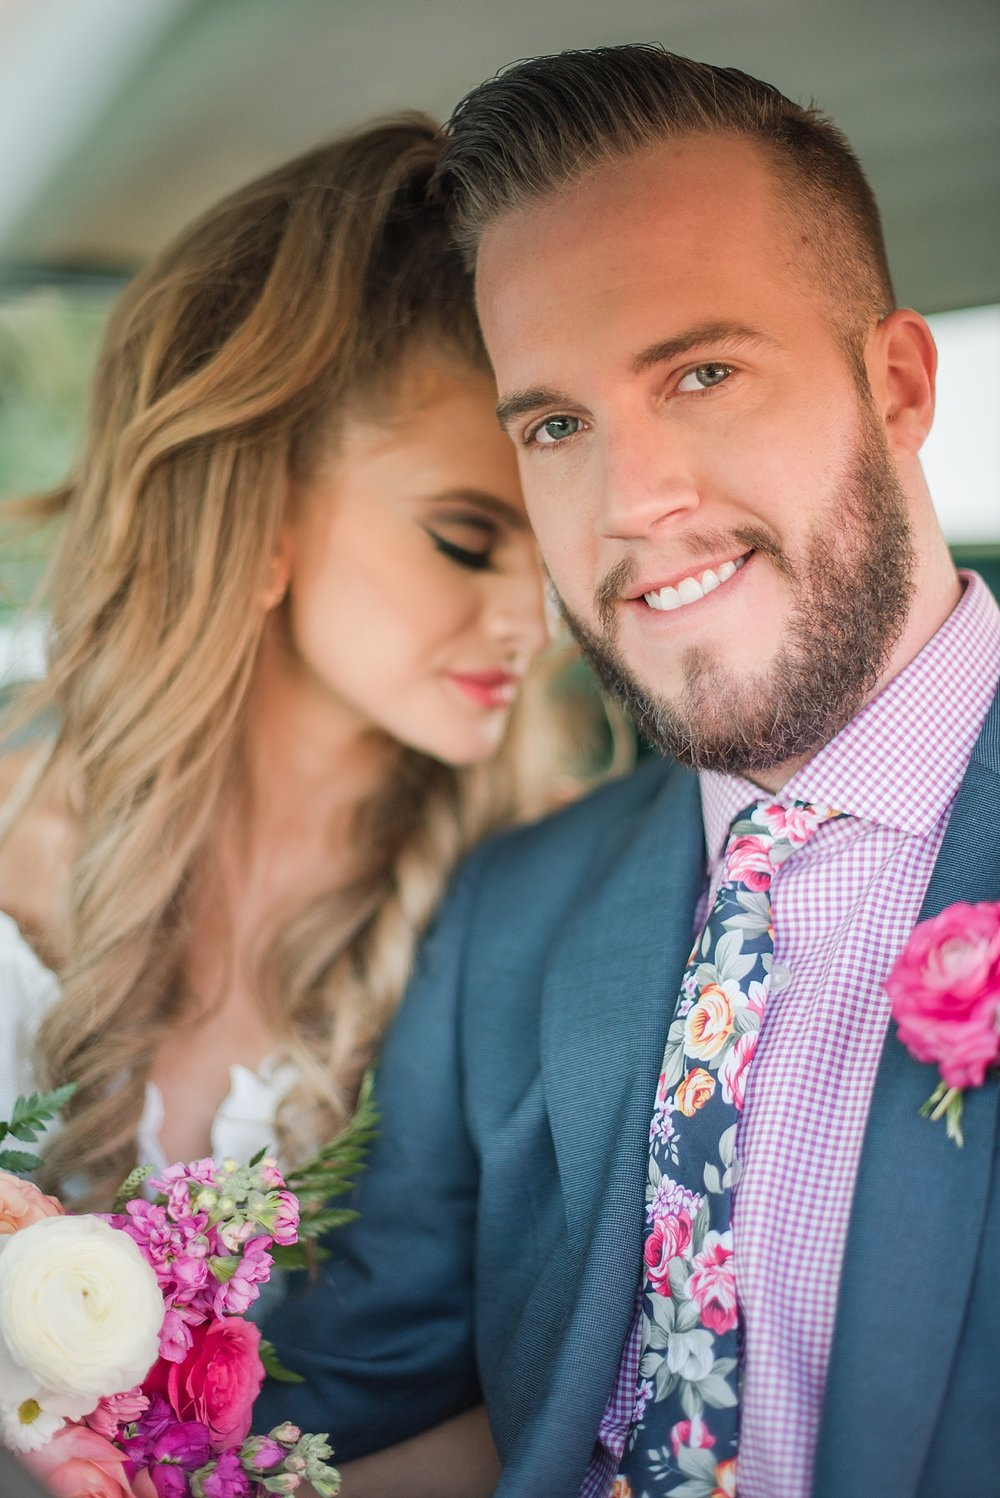 Vintage car provided by Roscoe + Louie. Bride Natalie Meyer wearing a dress by Bella Lily Bridal, with her groom Zach Meyer at The Saguaro Scottsdale. Hair and makeup was done by Makiaj Beauty. Groom's tux was provided by Magro Clothing. Photos by Jade Min Photography.